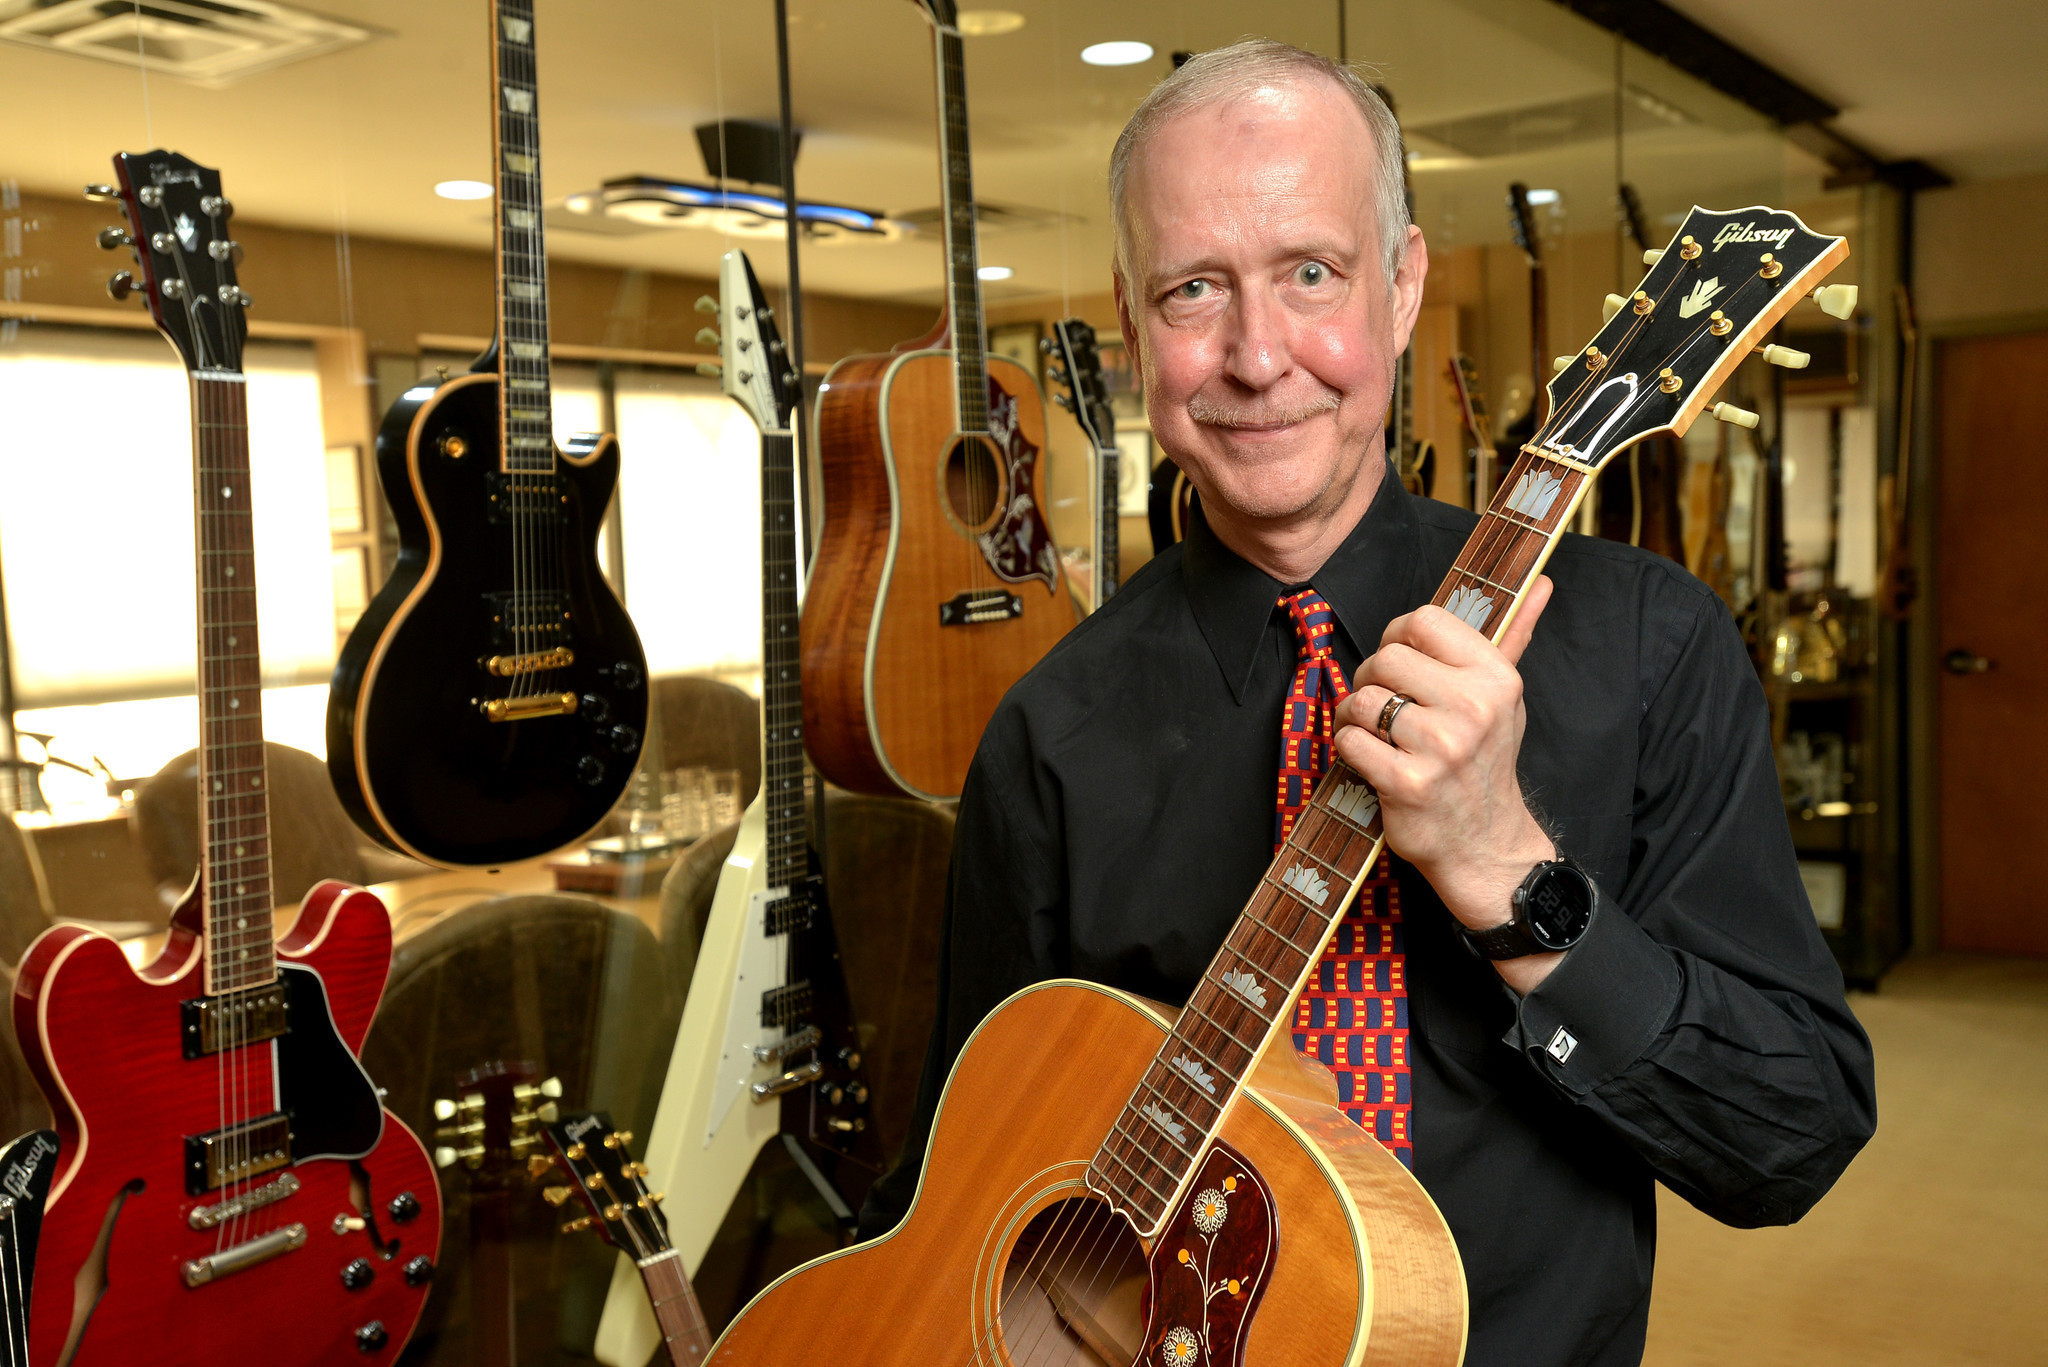 Gibson Brands transforms guitar-making into diverse 'music lifestyle' firm